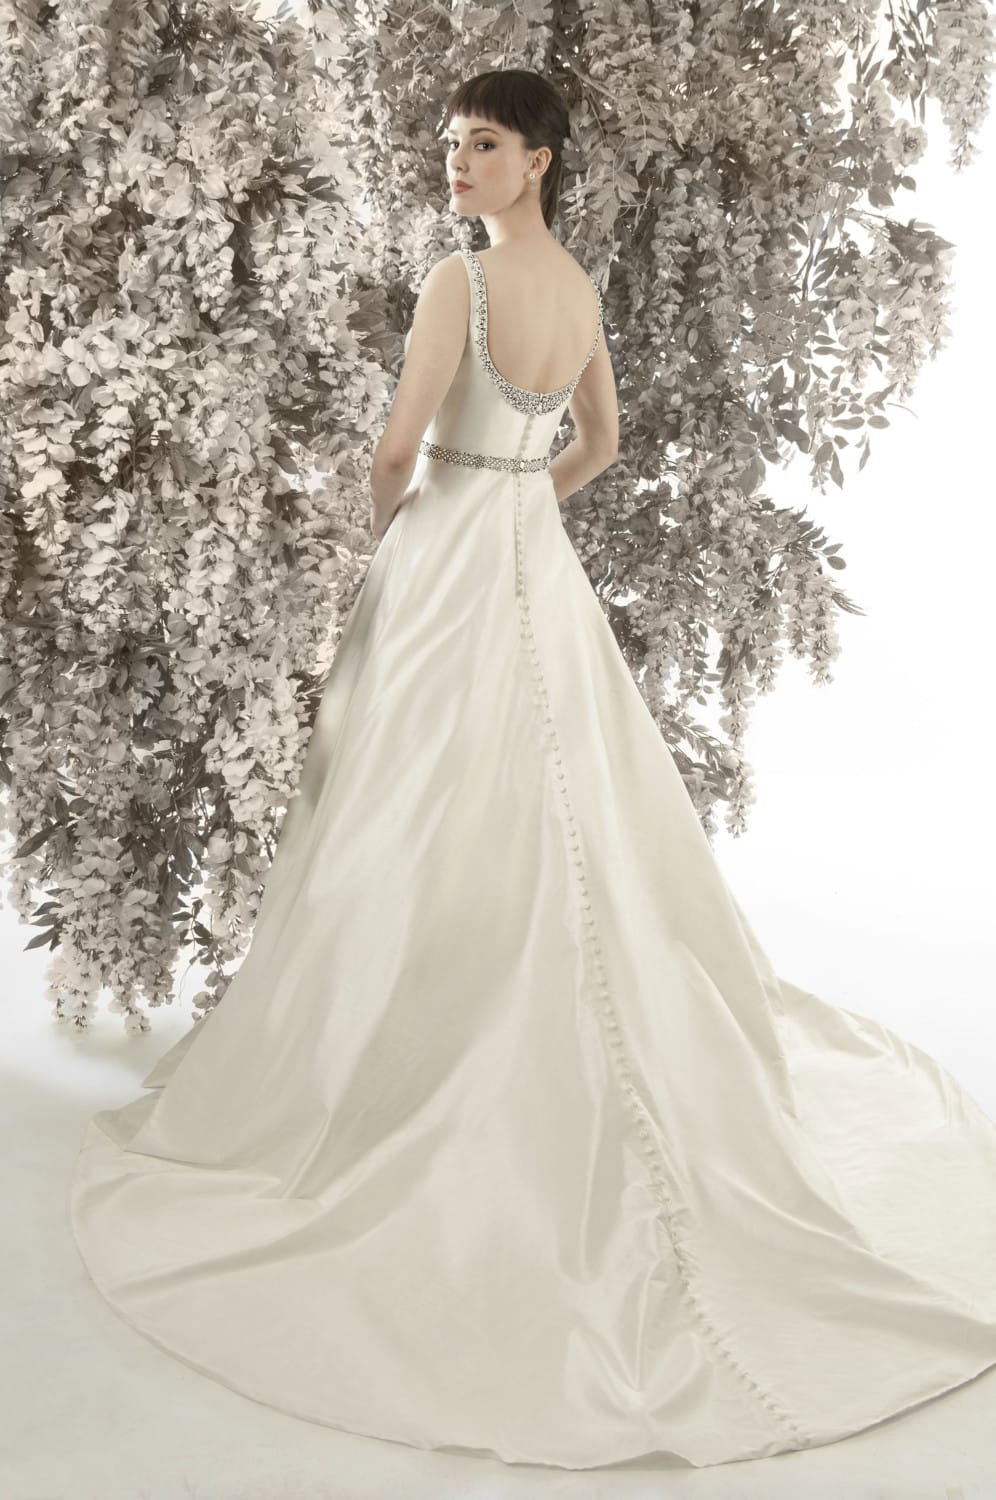 Worn Wedding Dresses 24